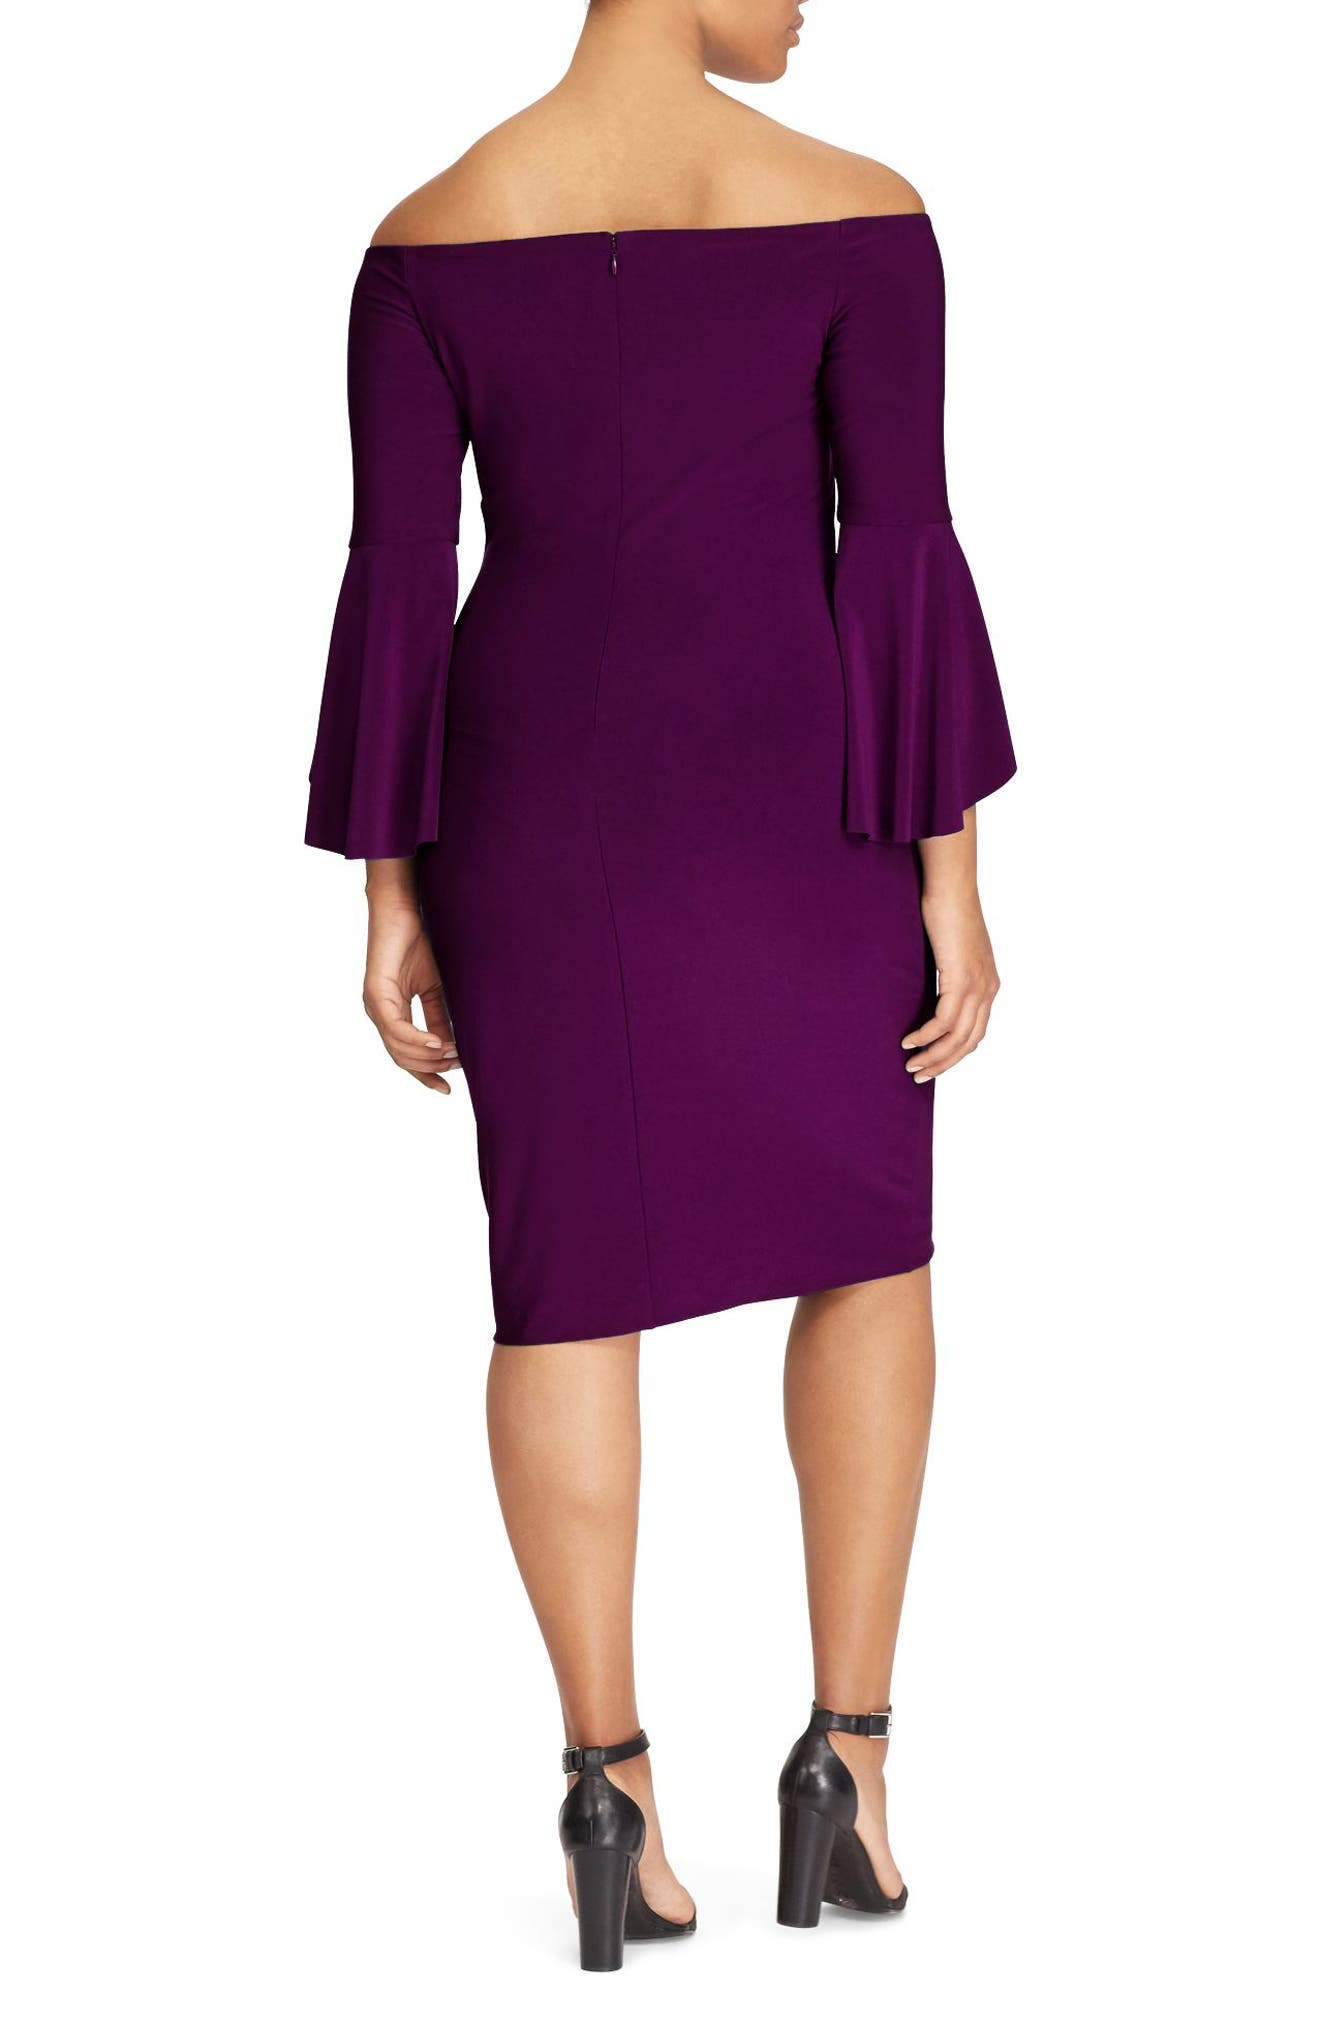 Bell Sleeve Sheath Dress,                             Alternate thumbnail 2, color,                             500